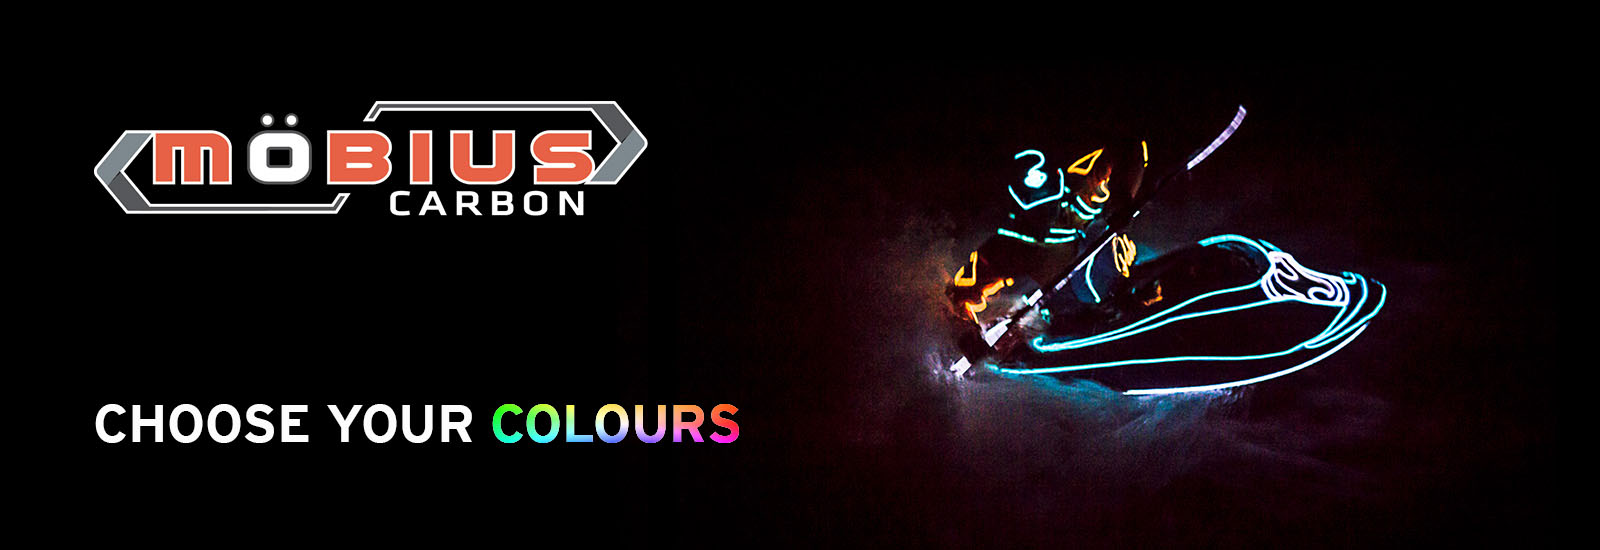 header image for carbon mobius